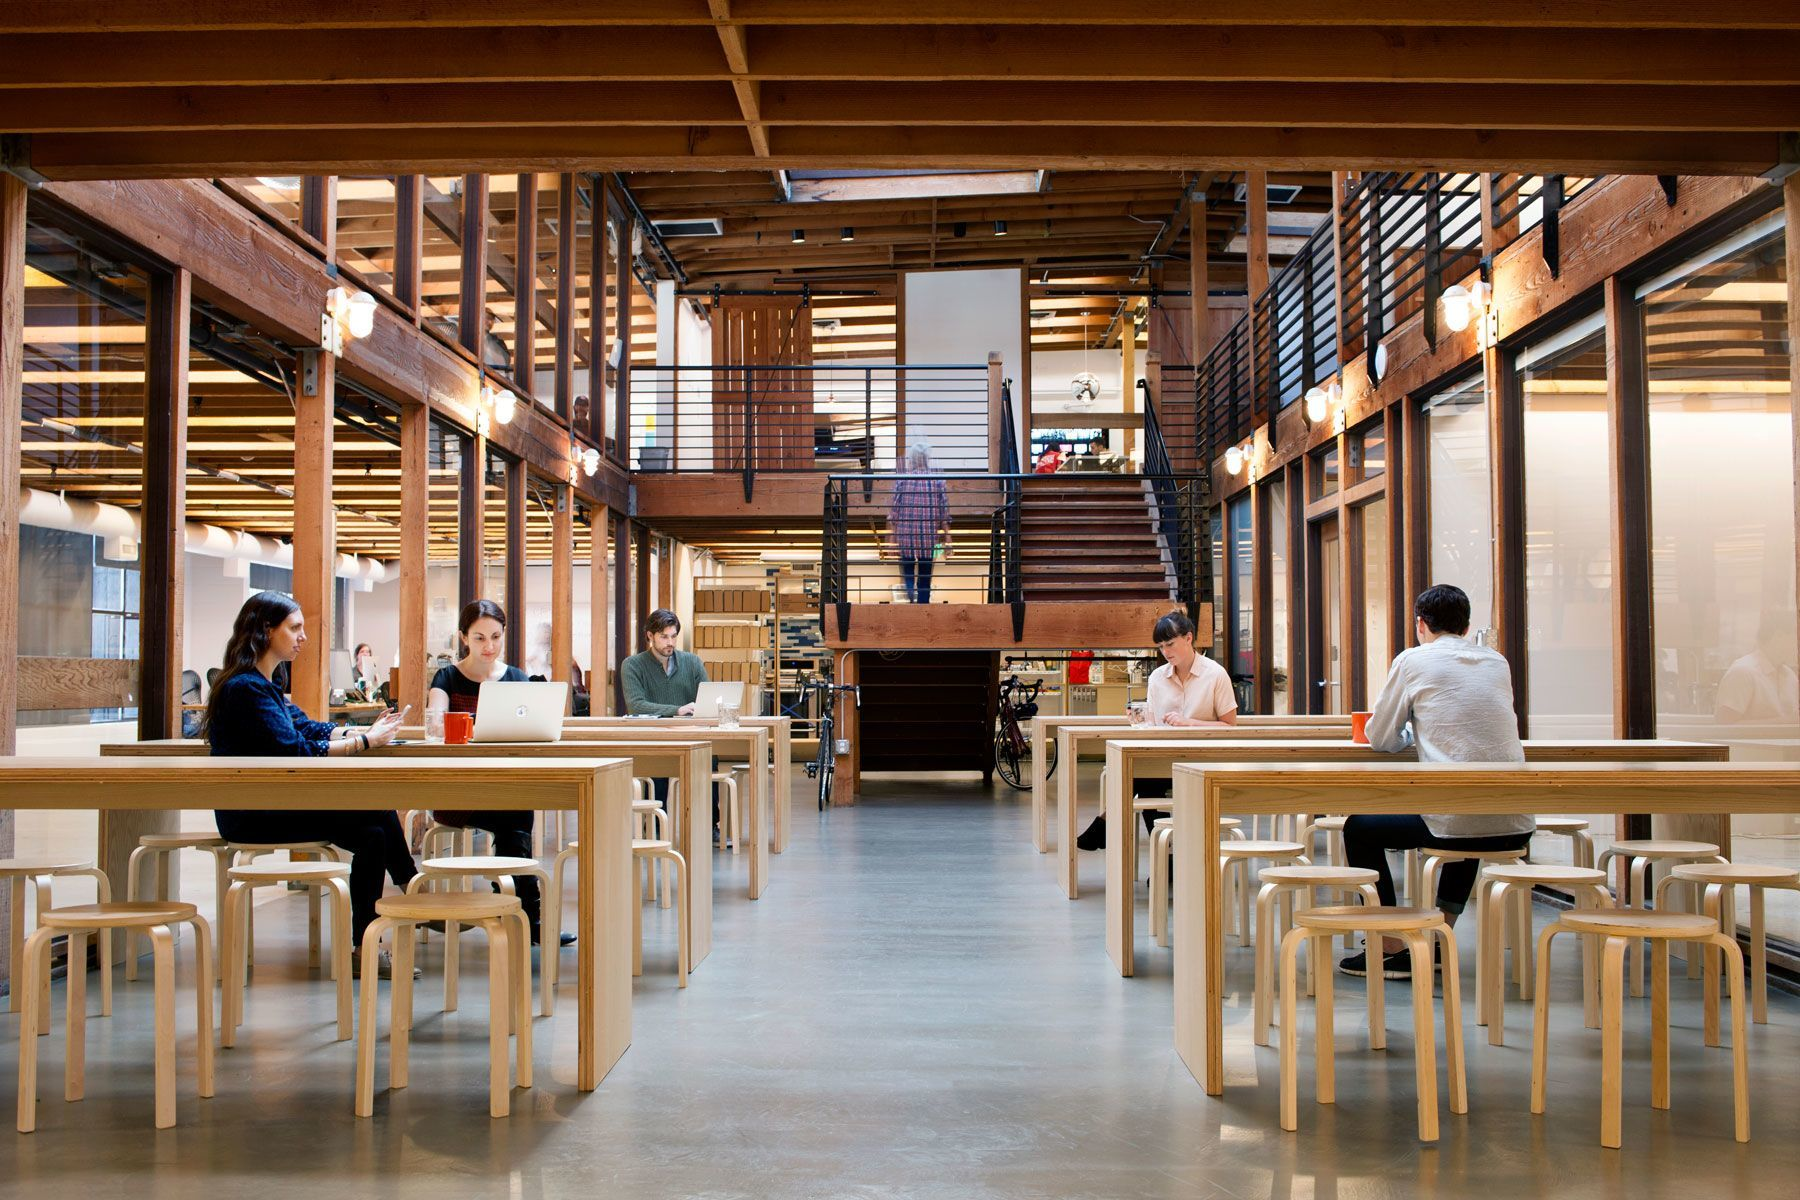 Take a tour of postmates beautiful san francisco office for Design companies in san francisco